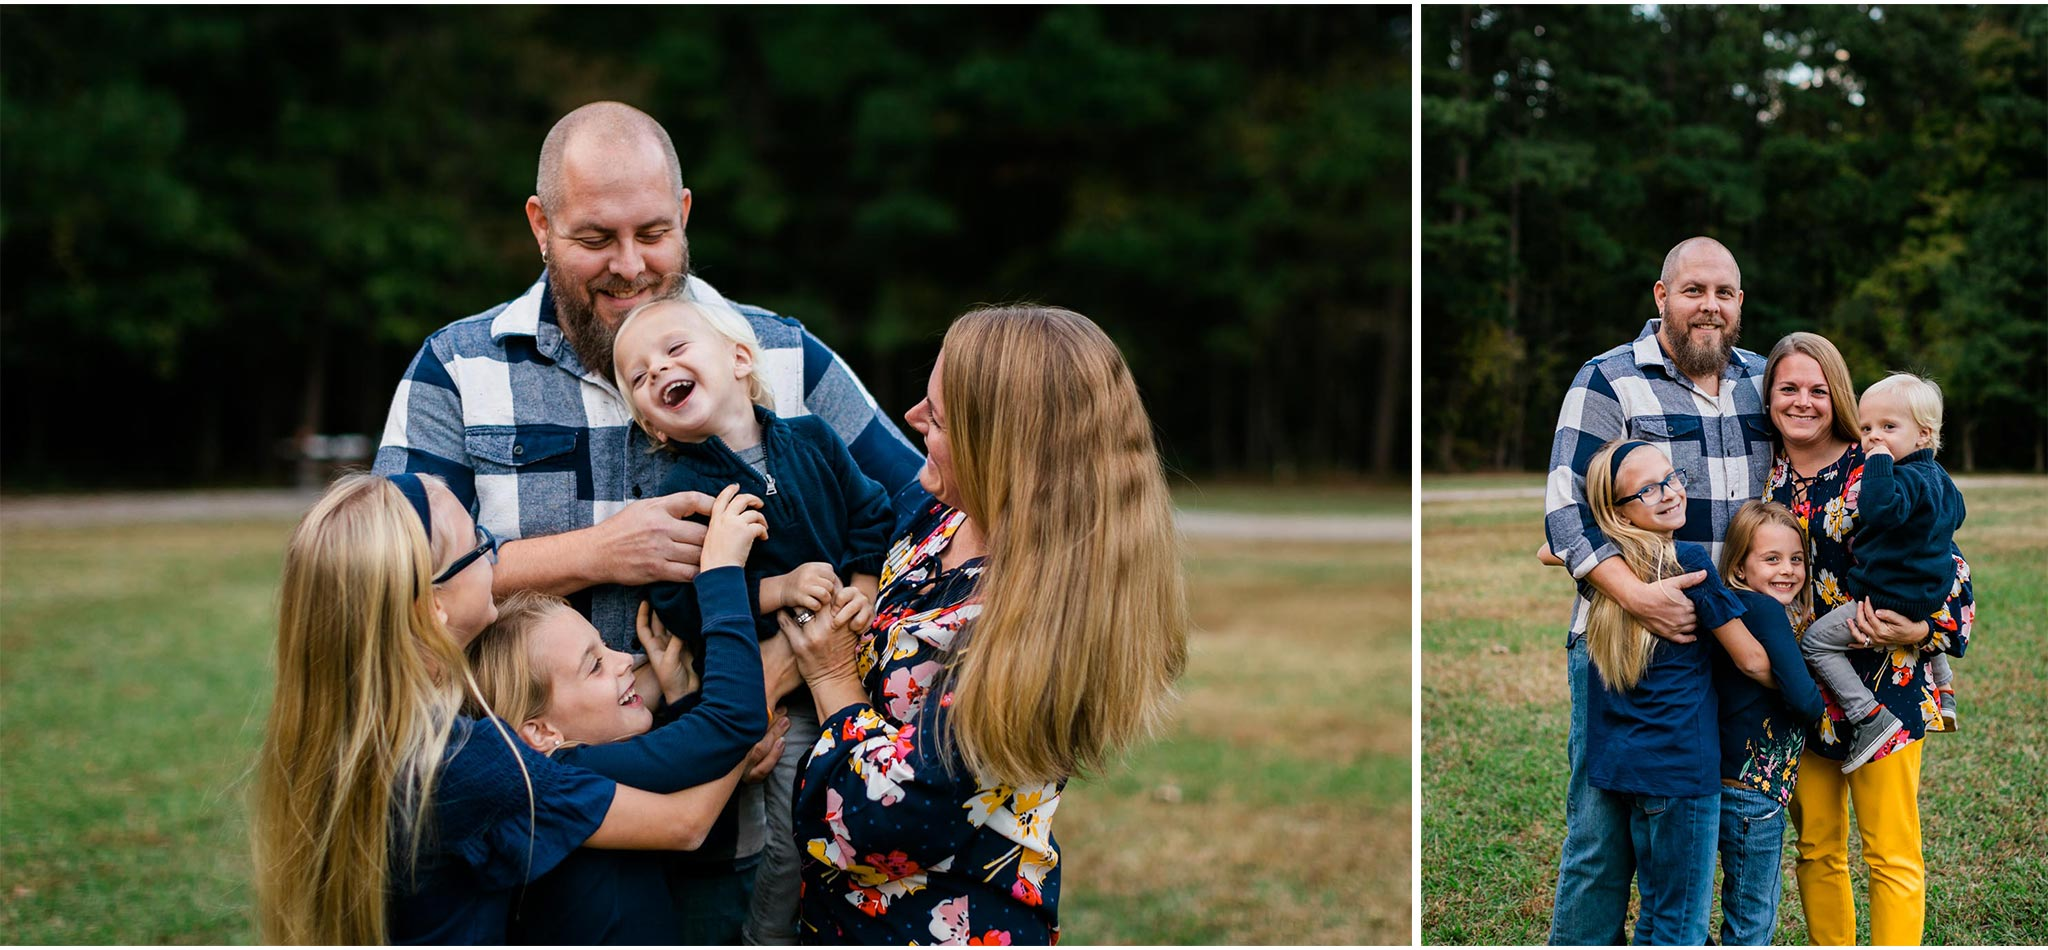 Umstead Park Family Photo Shoot in Fall | Raleigh Family Photographer | By G. Lin Photography